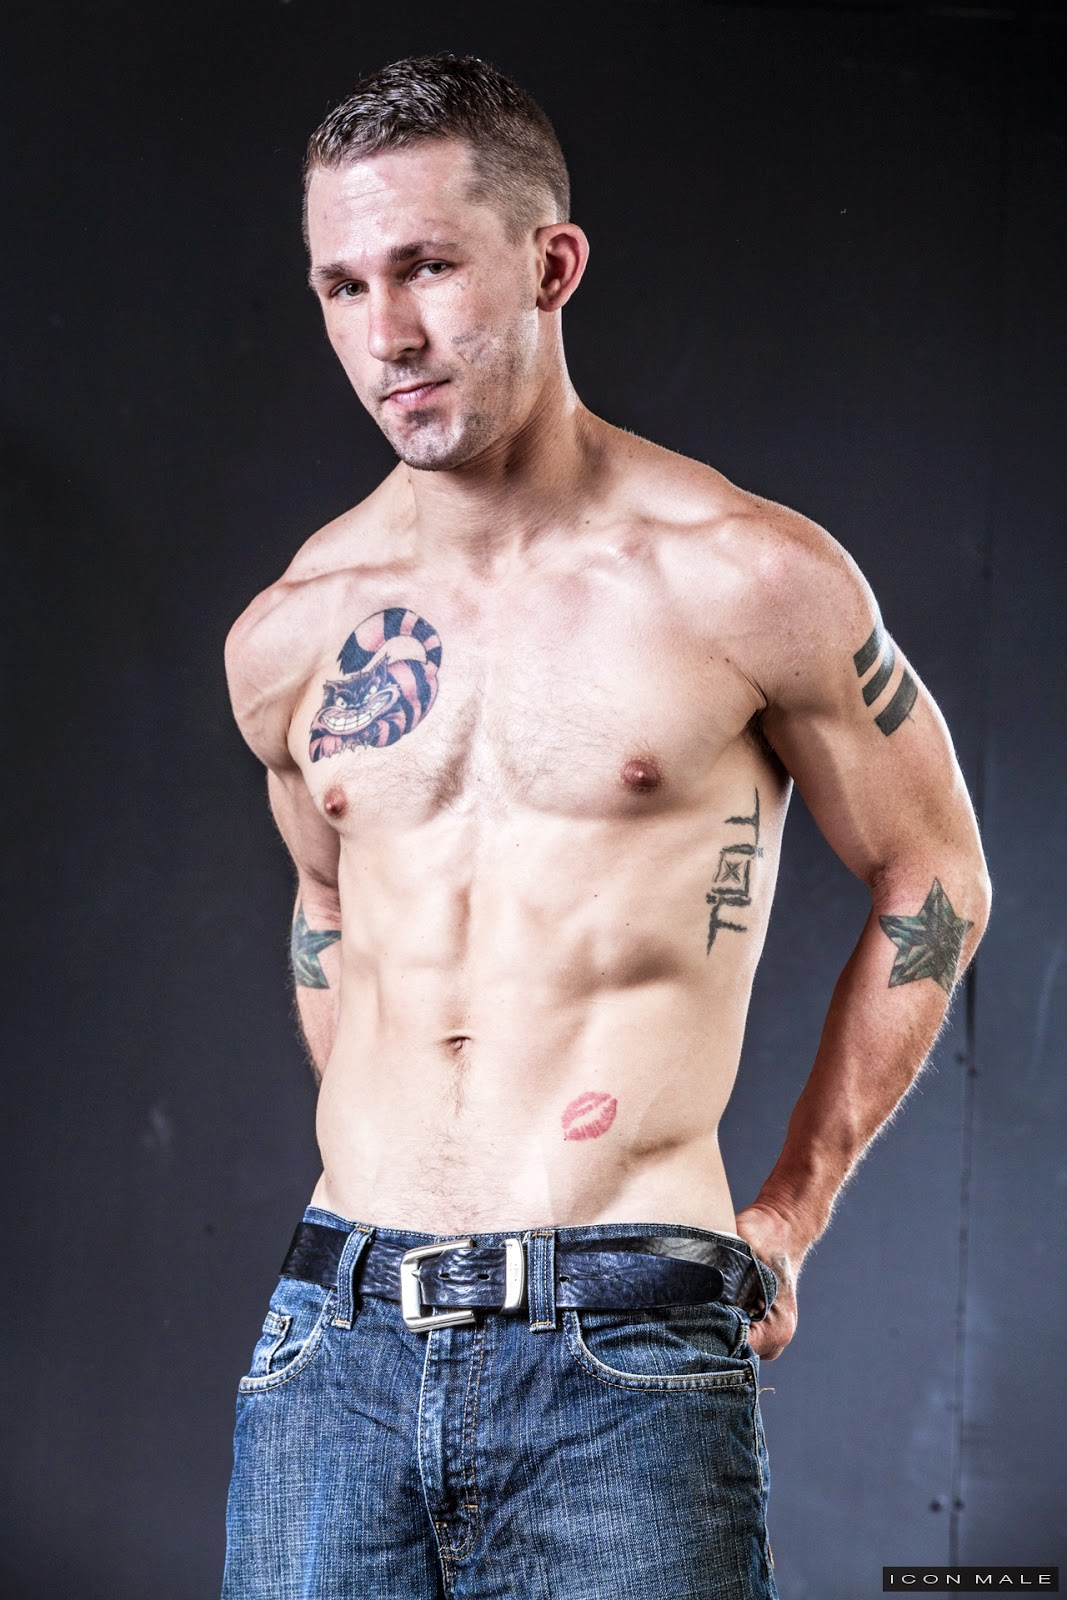 from Louis aaron james gay porn star